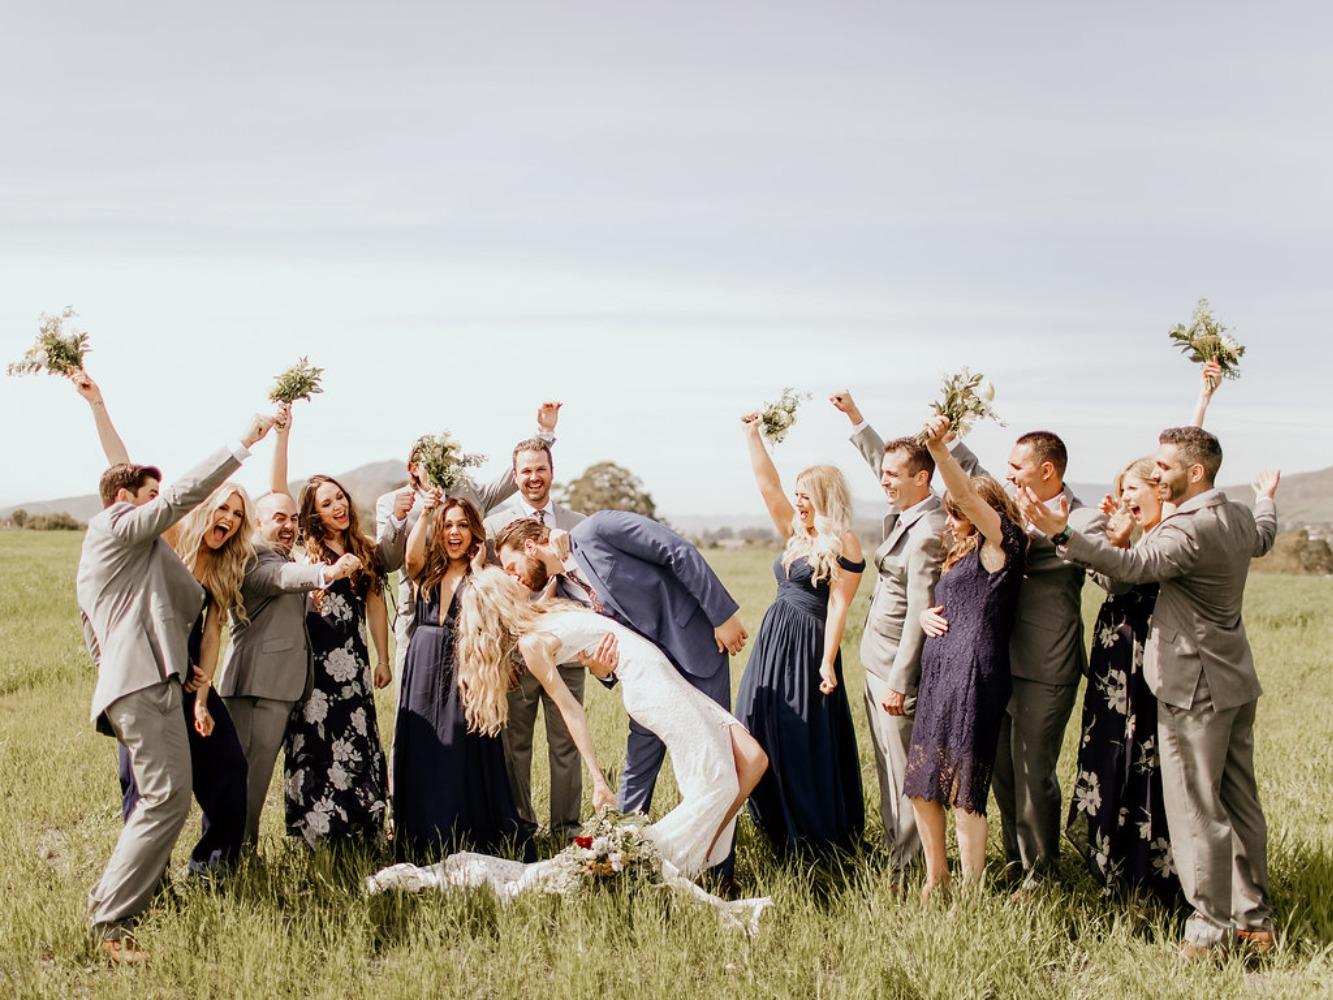 fun wedding kiss photo idea